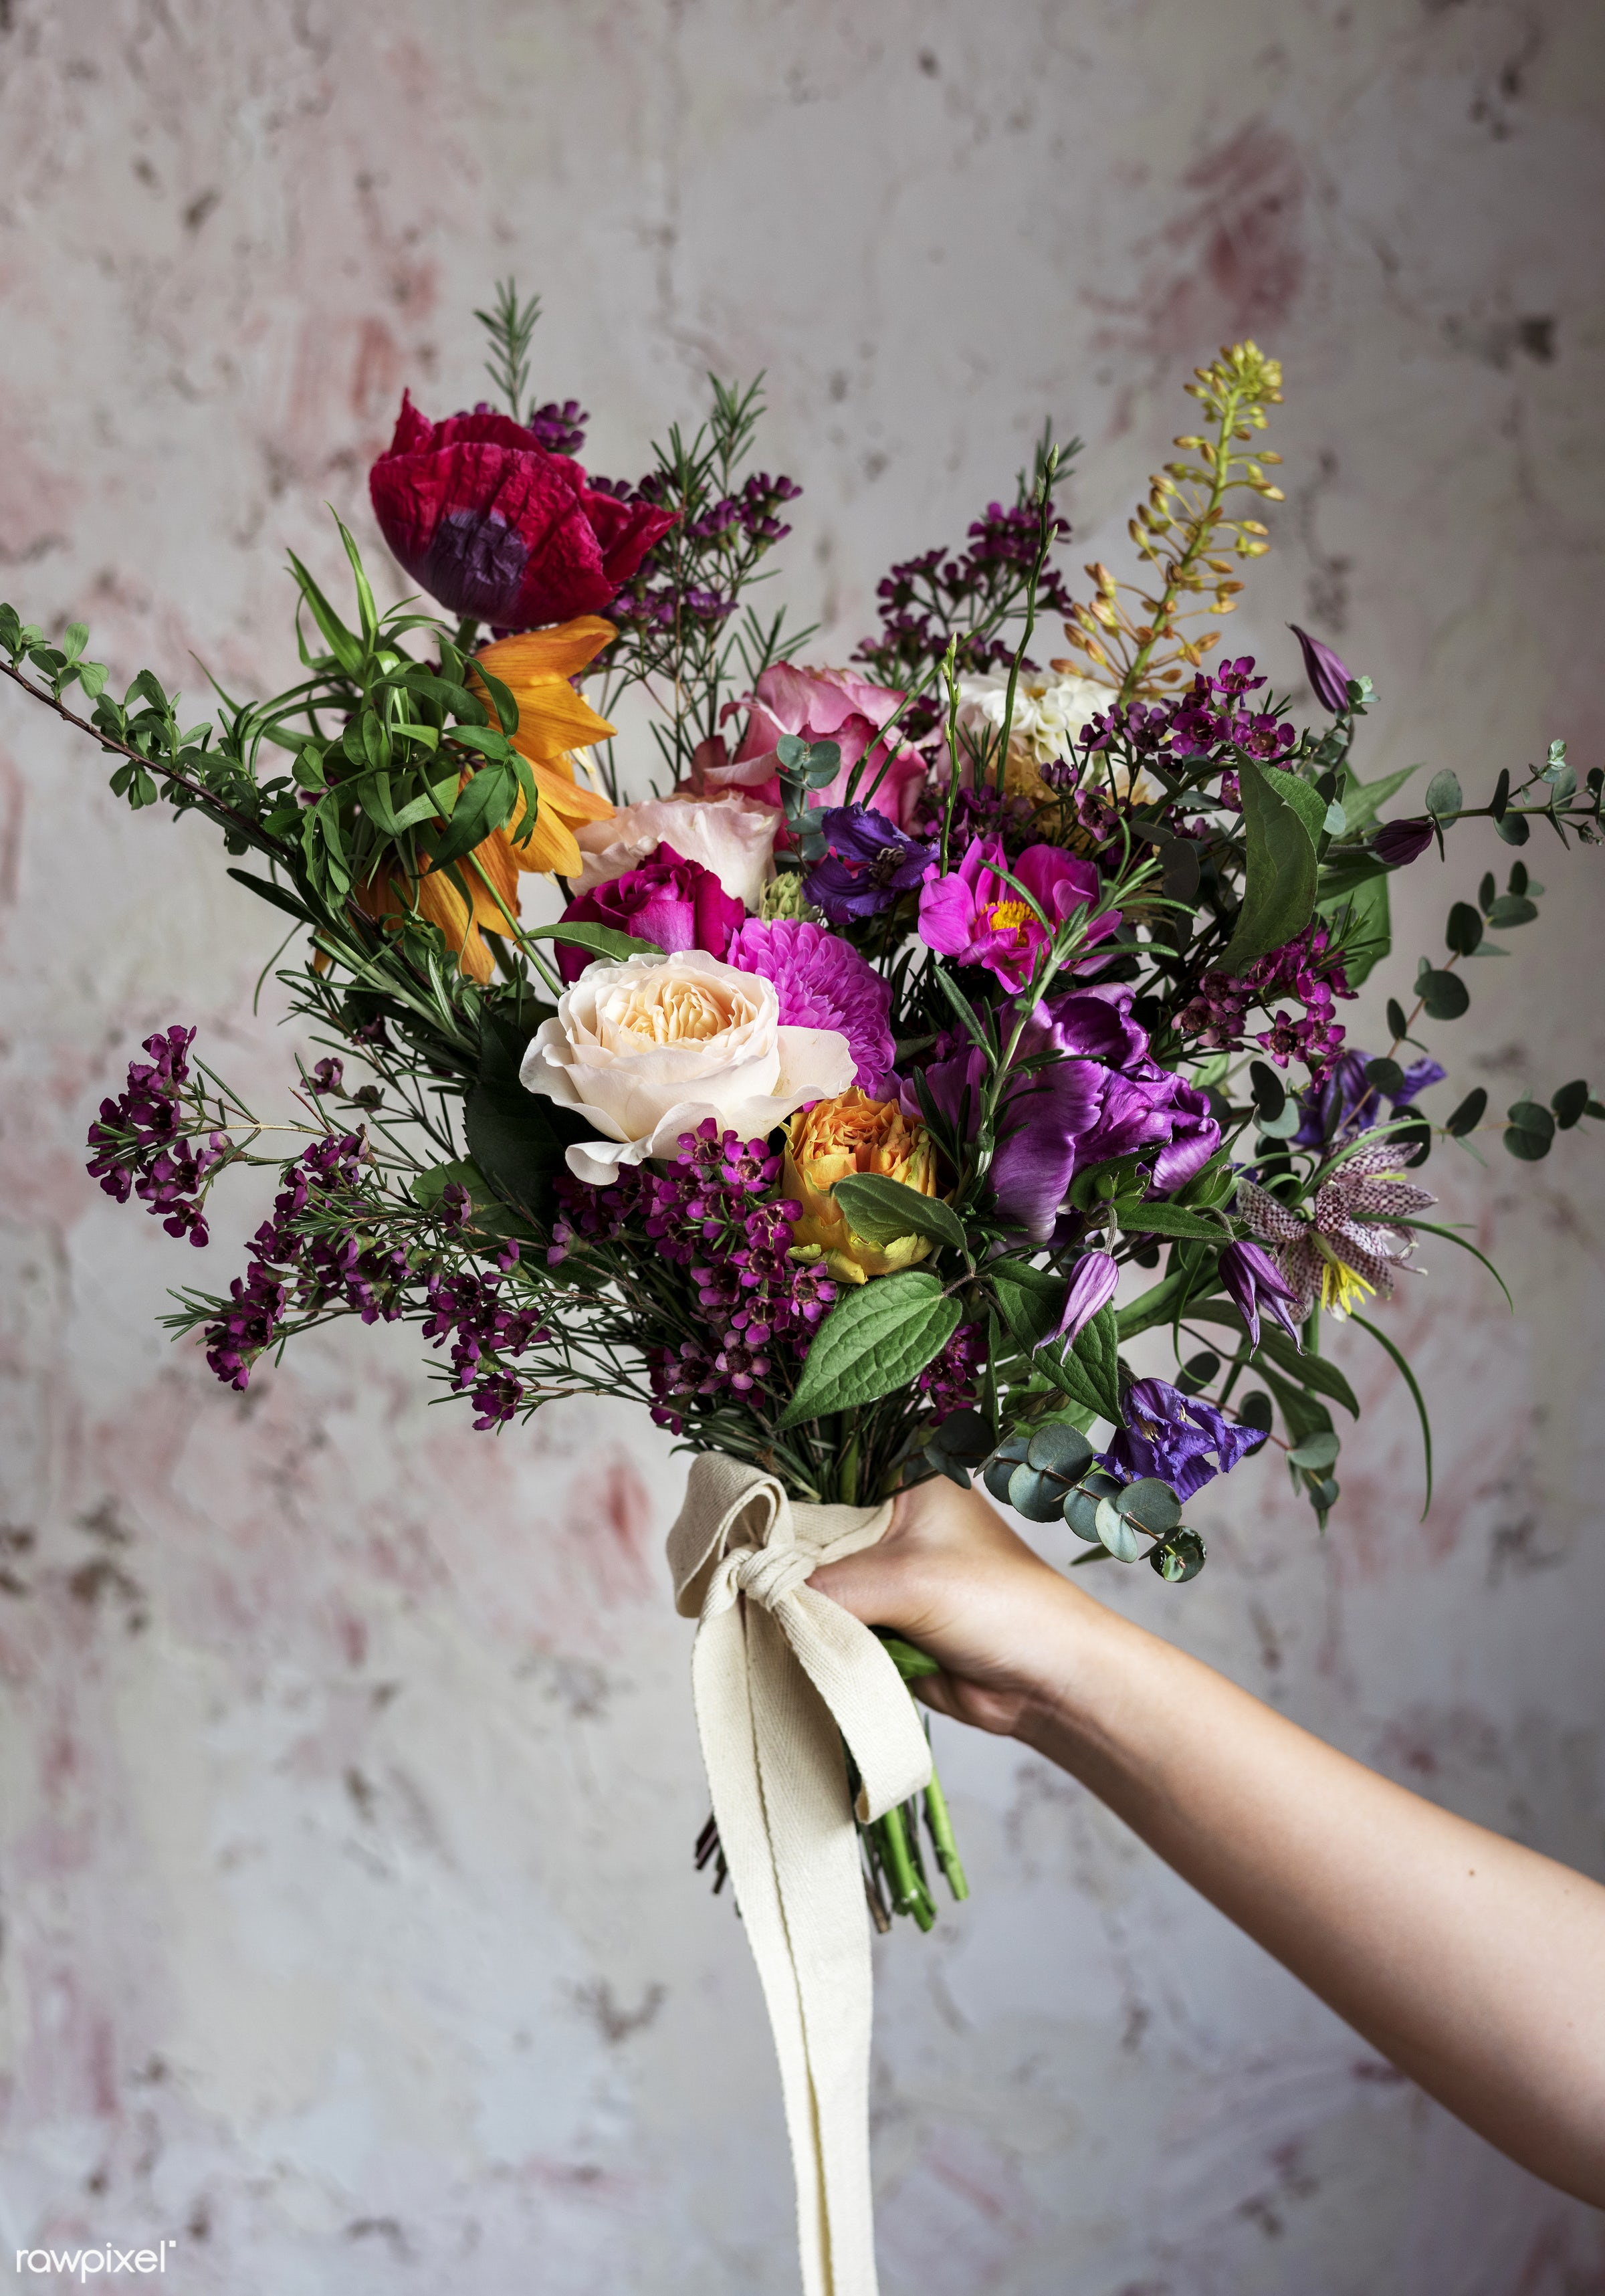 bouquet, ranunculus, holding, diverse, colorful, gold ribbon, people, real, nature, fresh, hands, mixed, flowers, caspia,...